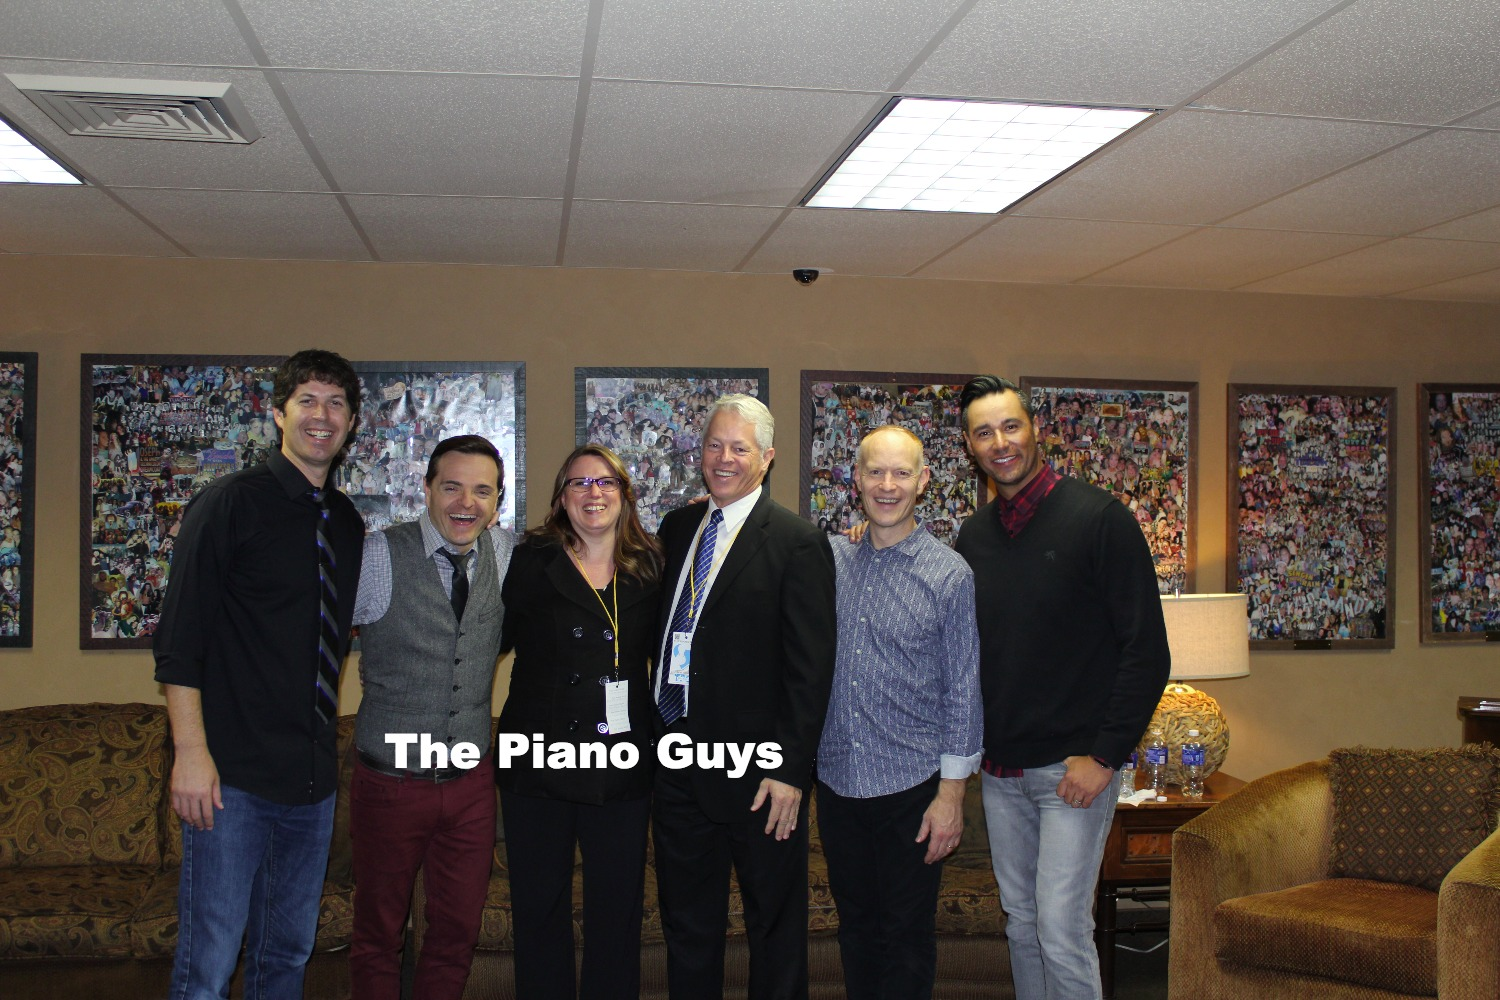 Duane and Jen with the Piano Guys 102220